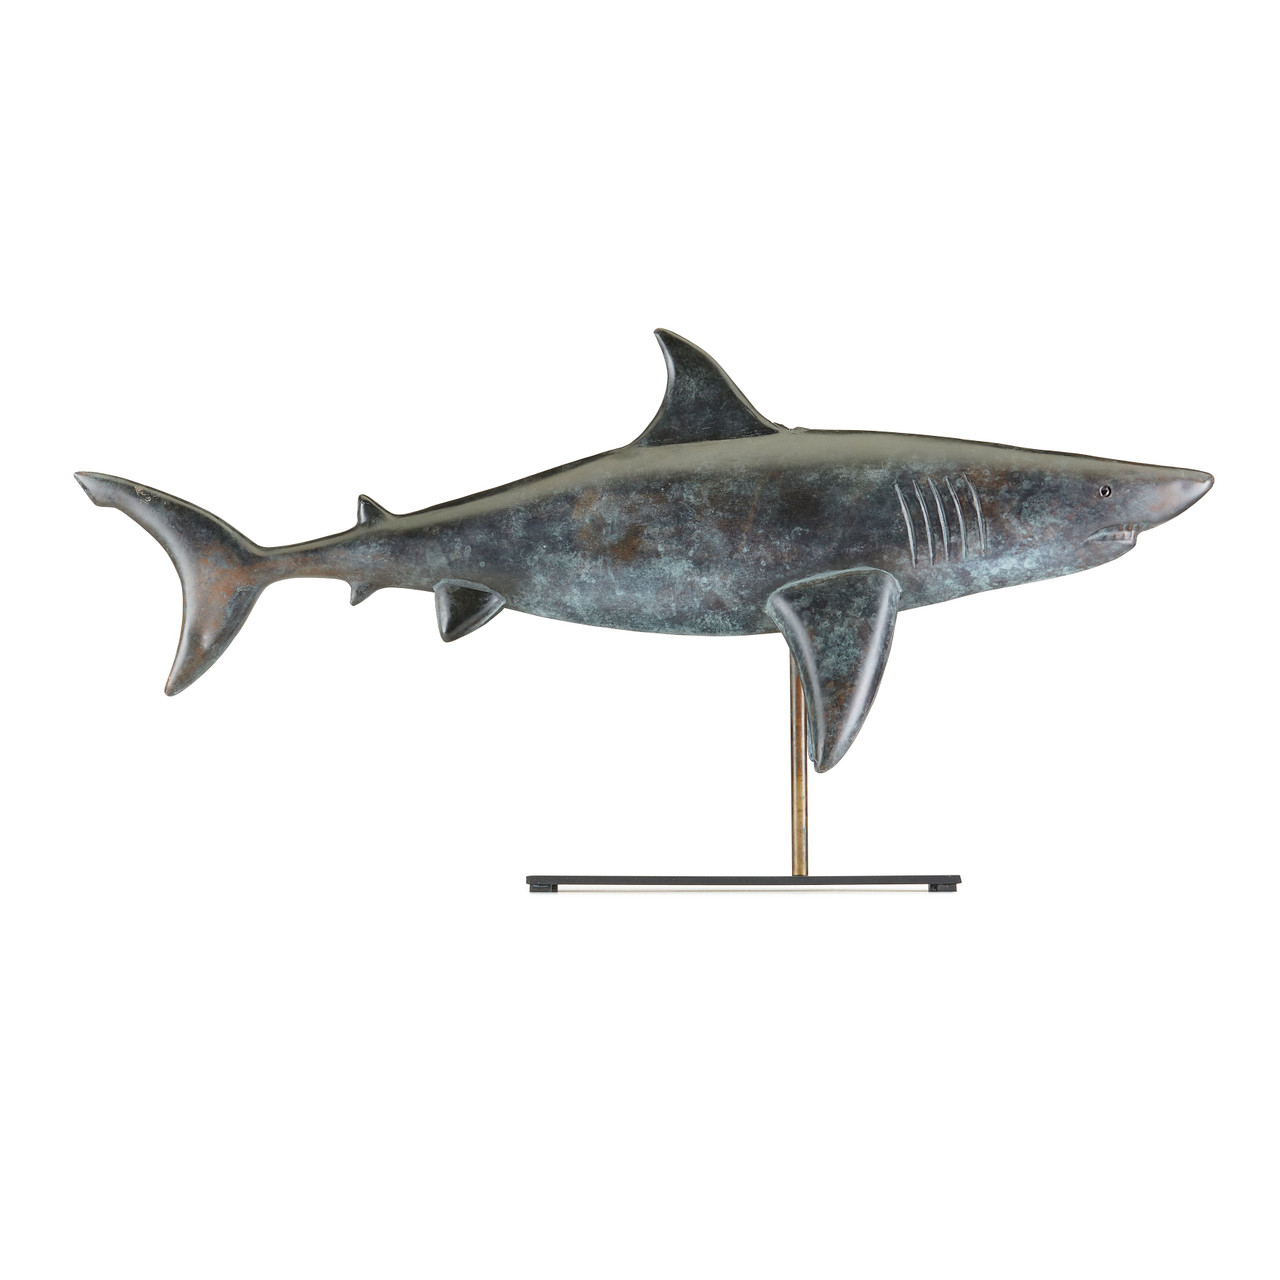 Shark Table Top Sculpture - Pure Copper Hand Finished Grey Patina, Nautical Home Décor by Good Directions